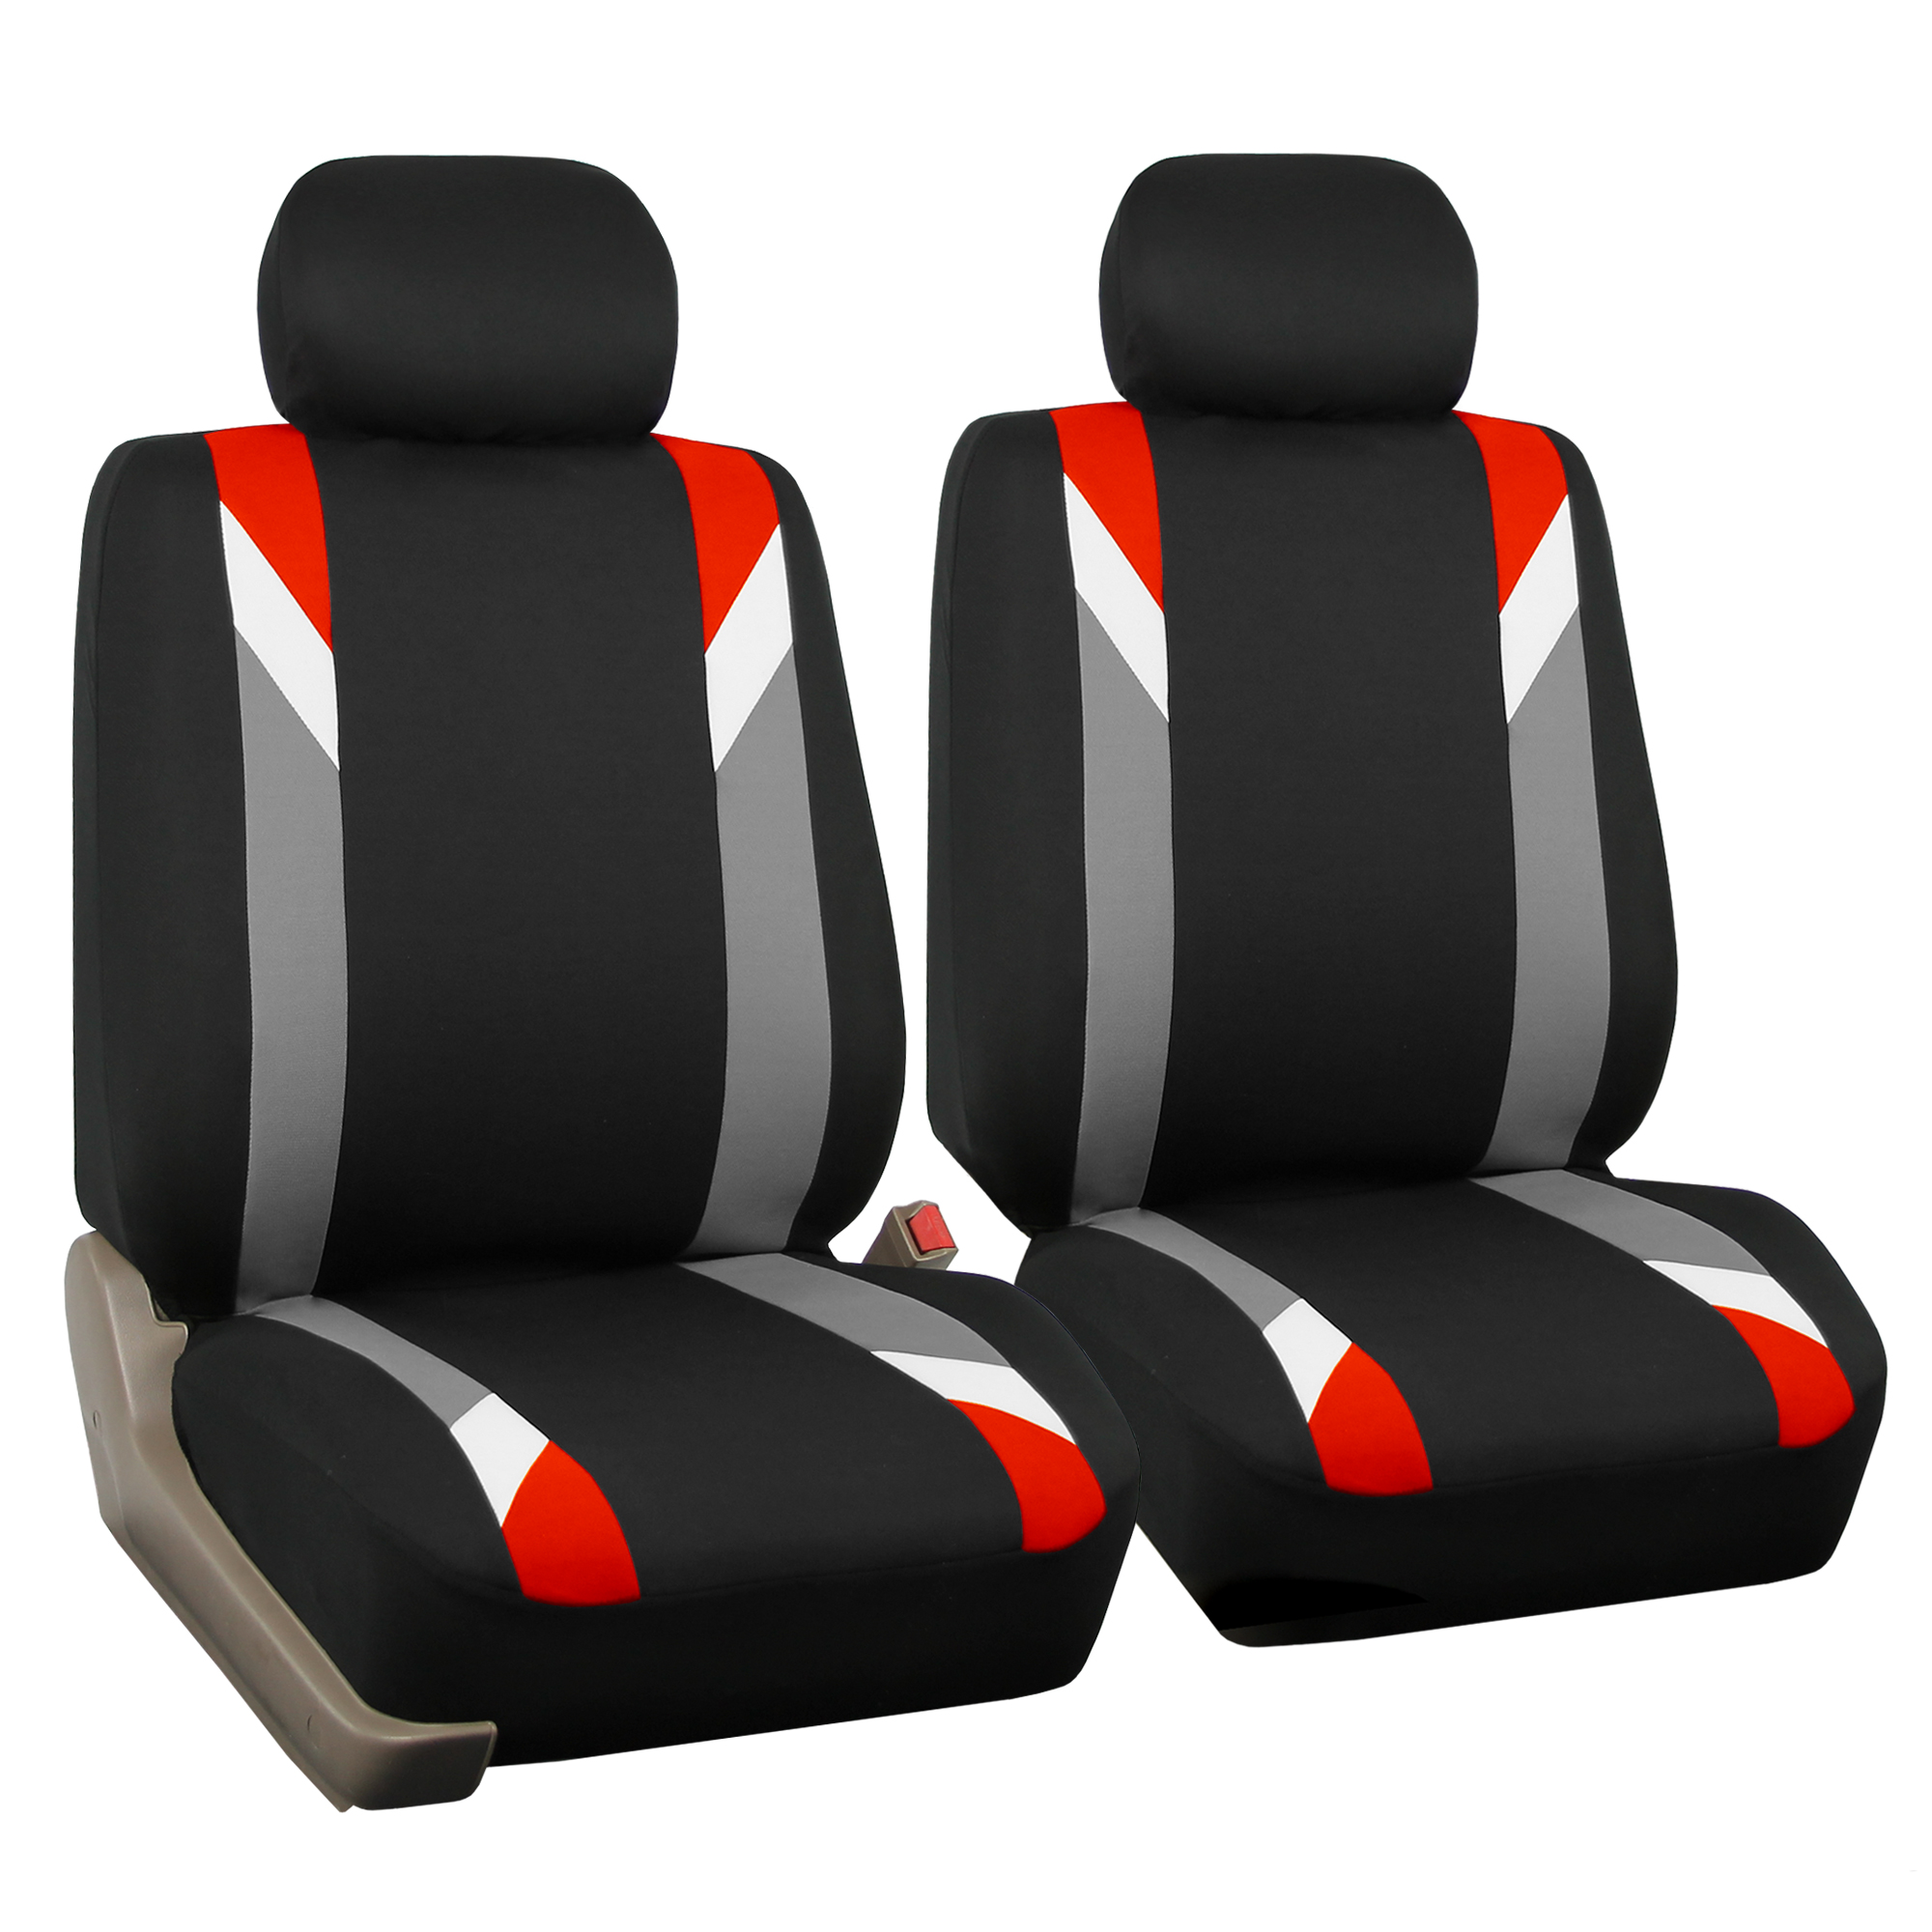 racing car seat covers for auto with leather steering wheel red black. Black Bedroom Furniture Sets. Home Design Ideas